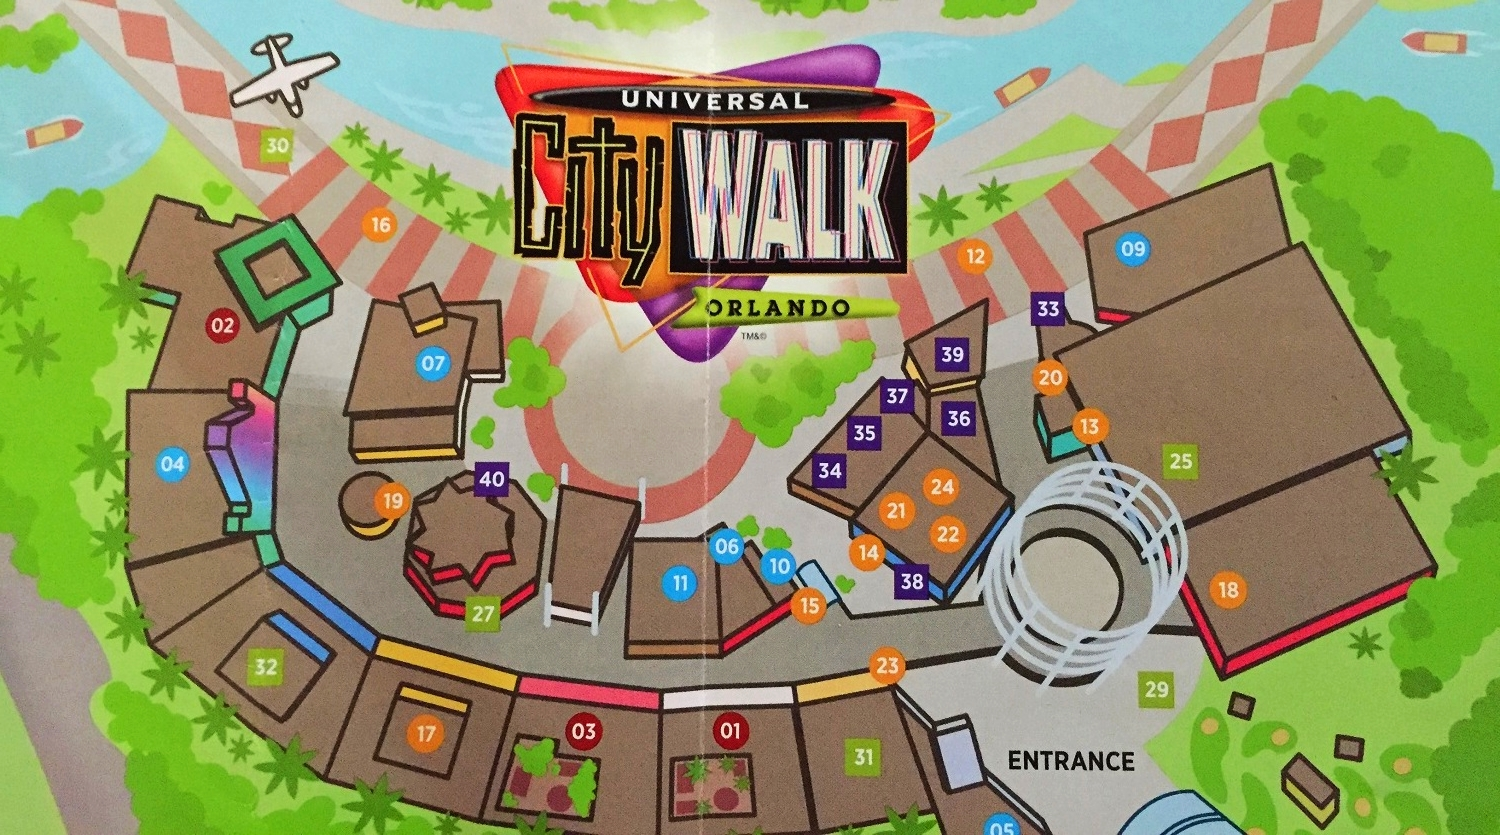 P!Q is number 37 on this CityWalk map.